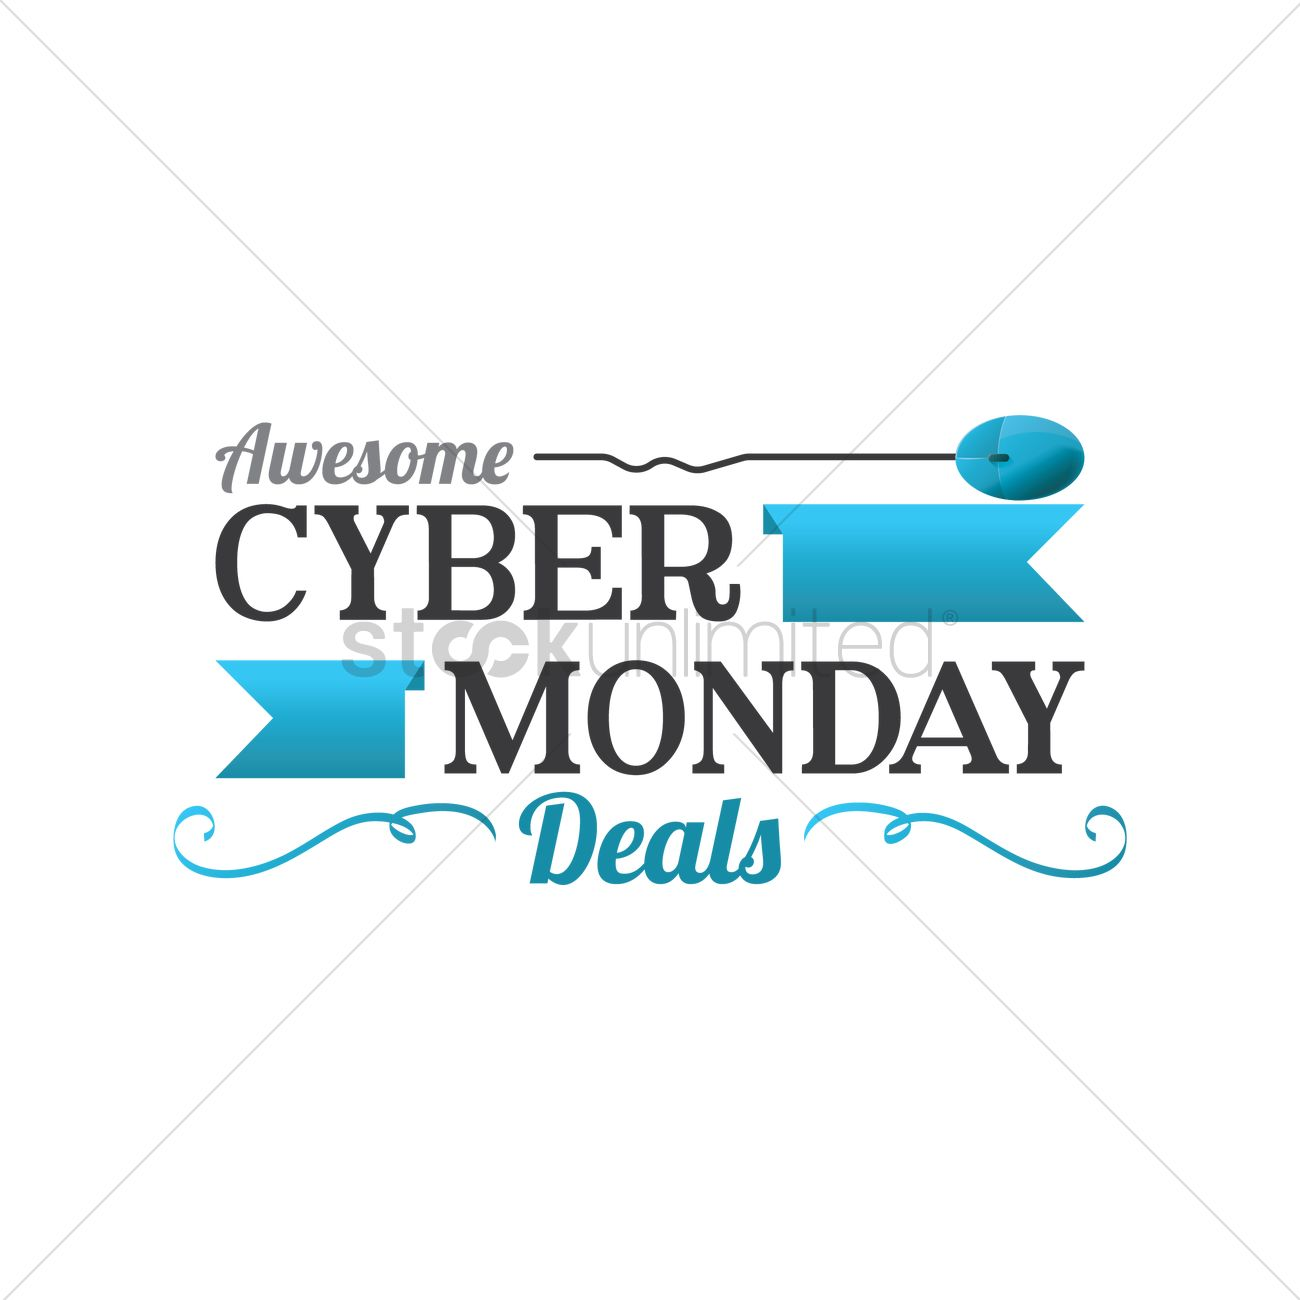 Cyber monday sale wallpaper vector image 1590746 for Wallpaper sale